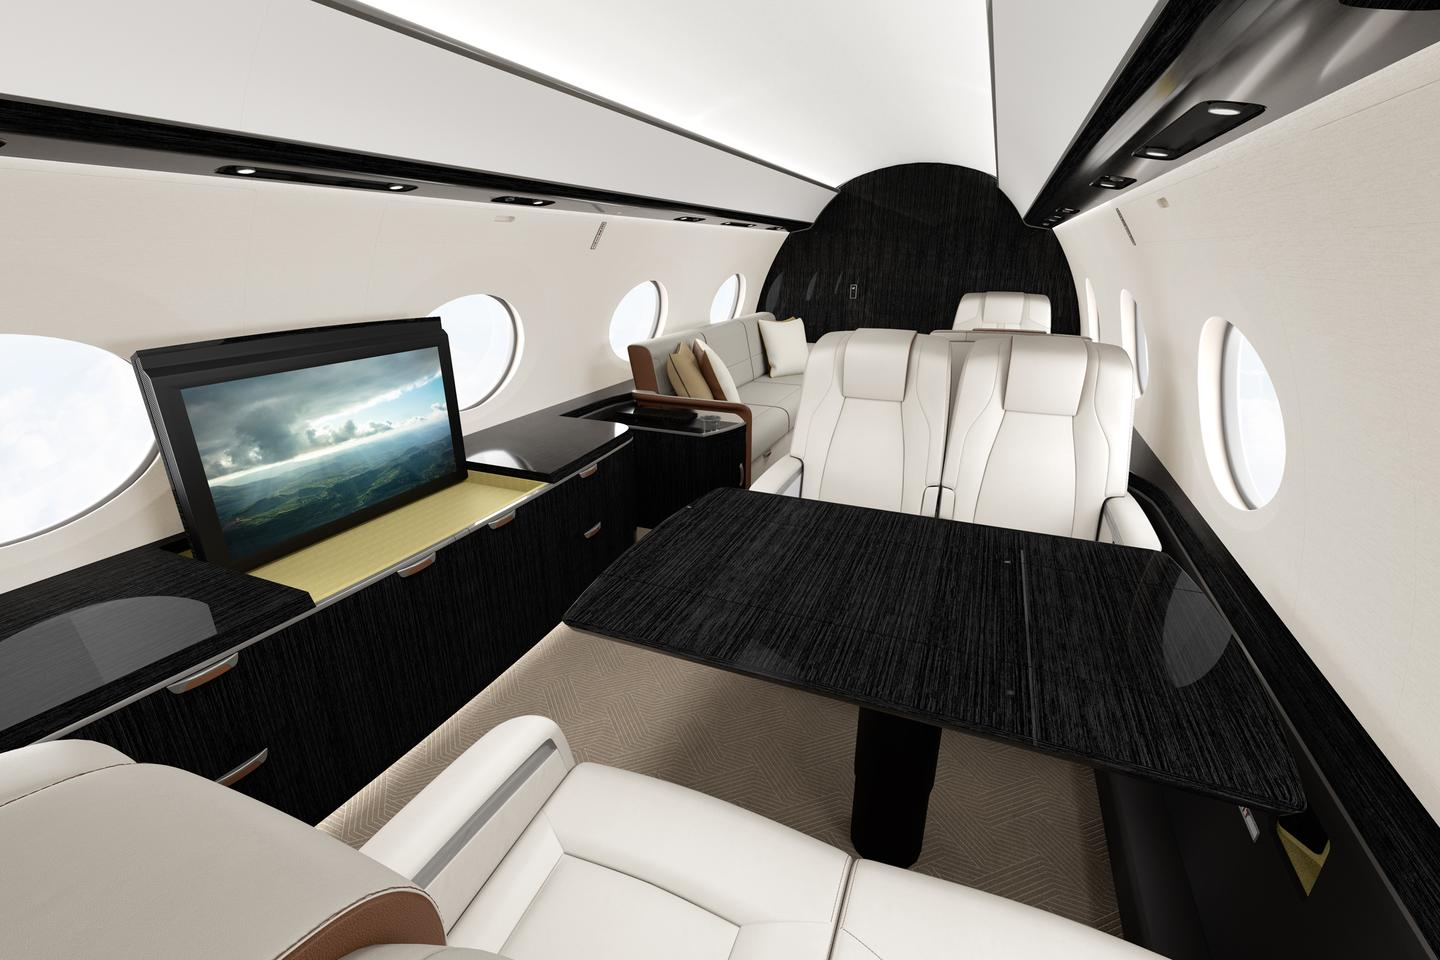 The G800 cabin